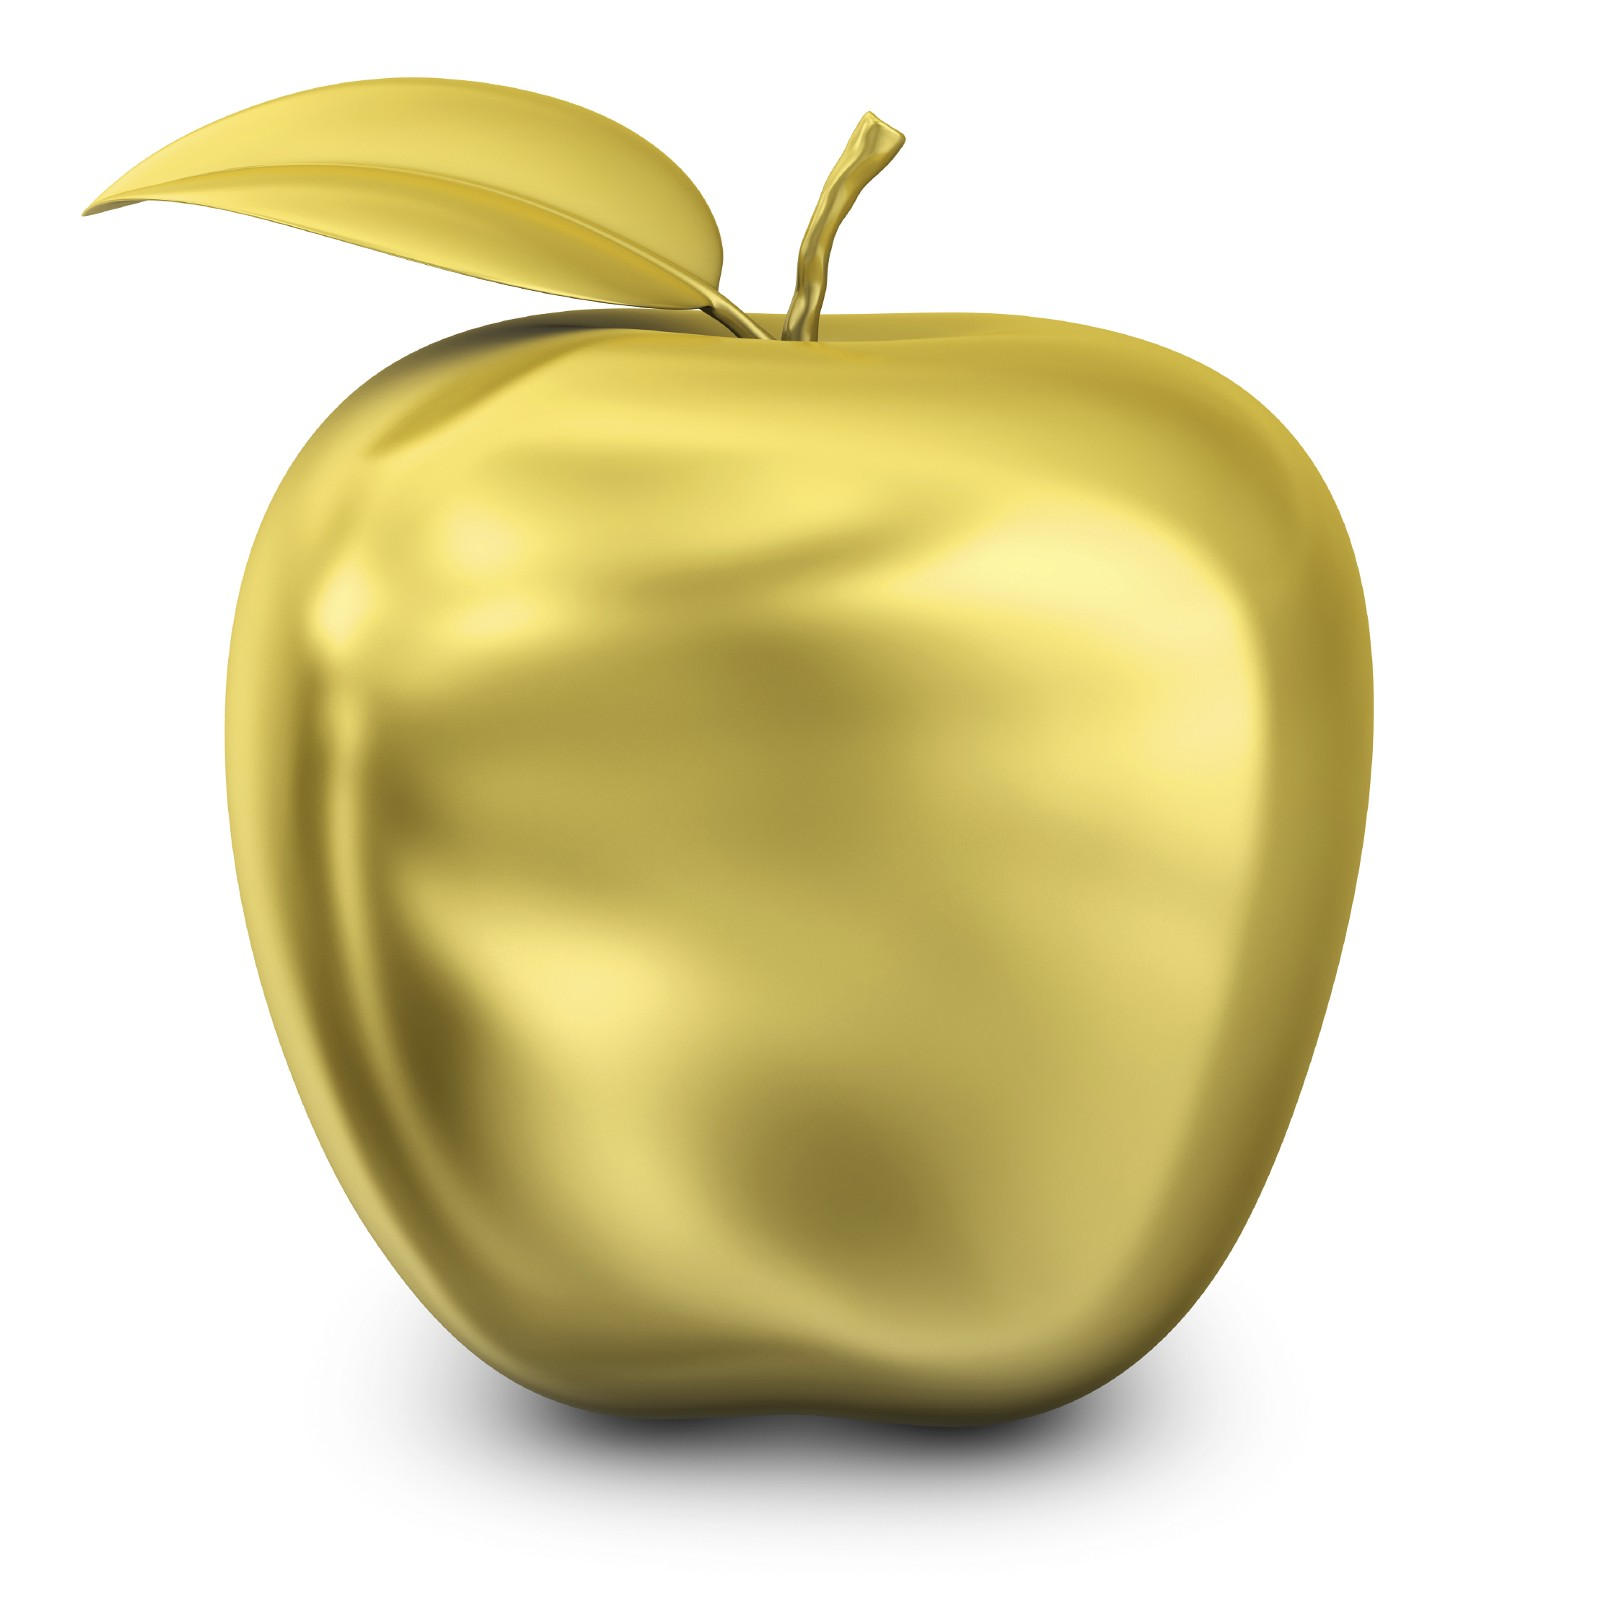 Satire Apple To Donate Recycled Gold To Victims Of